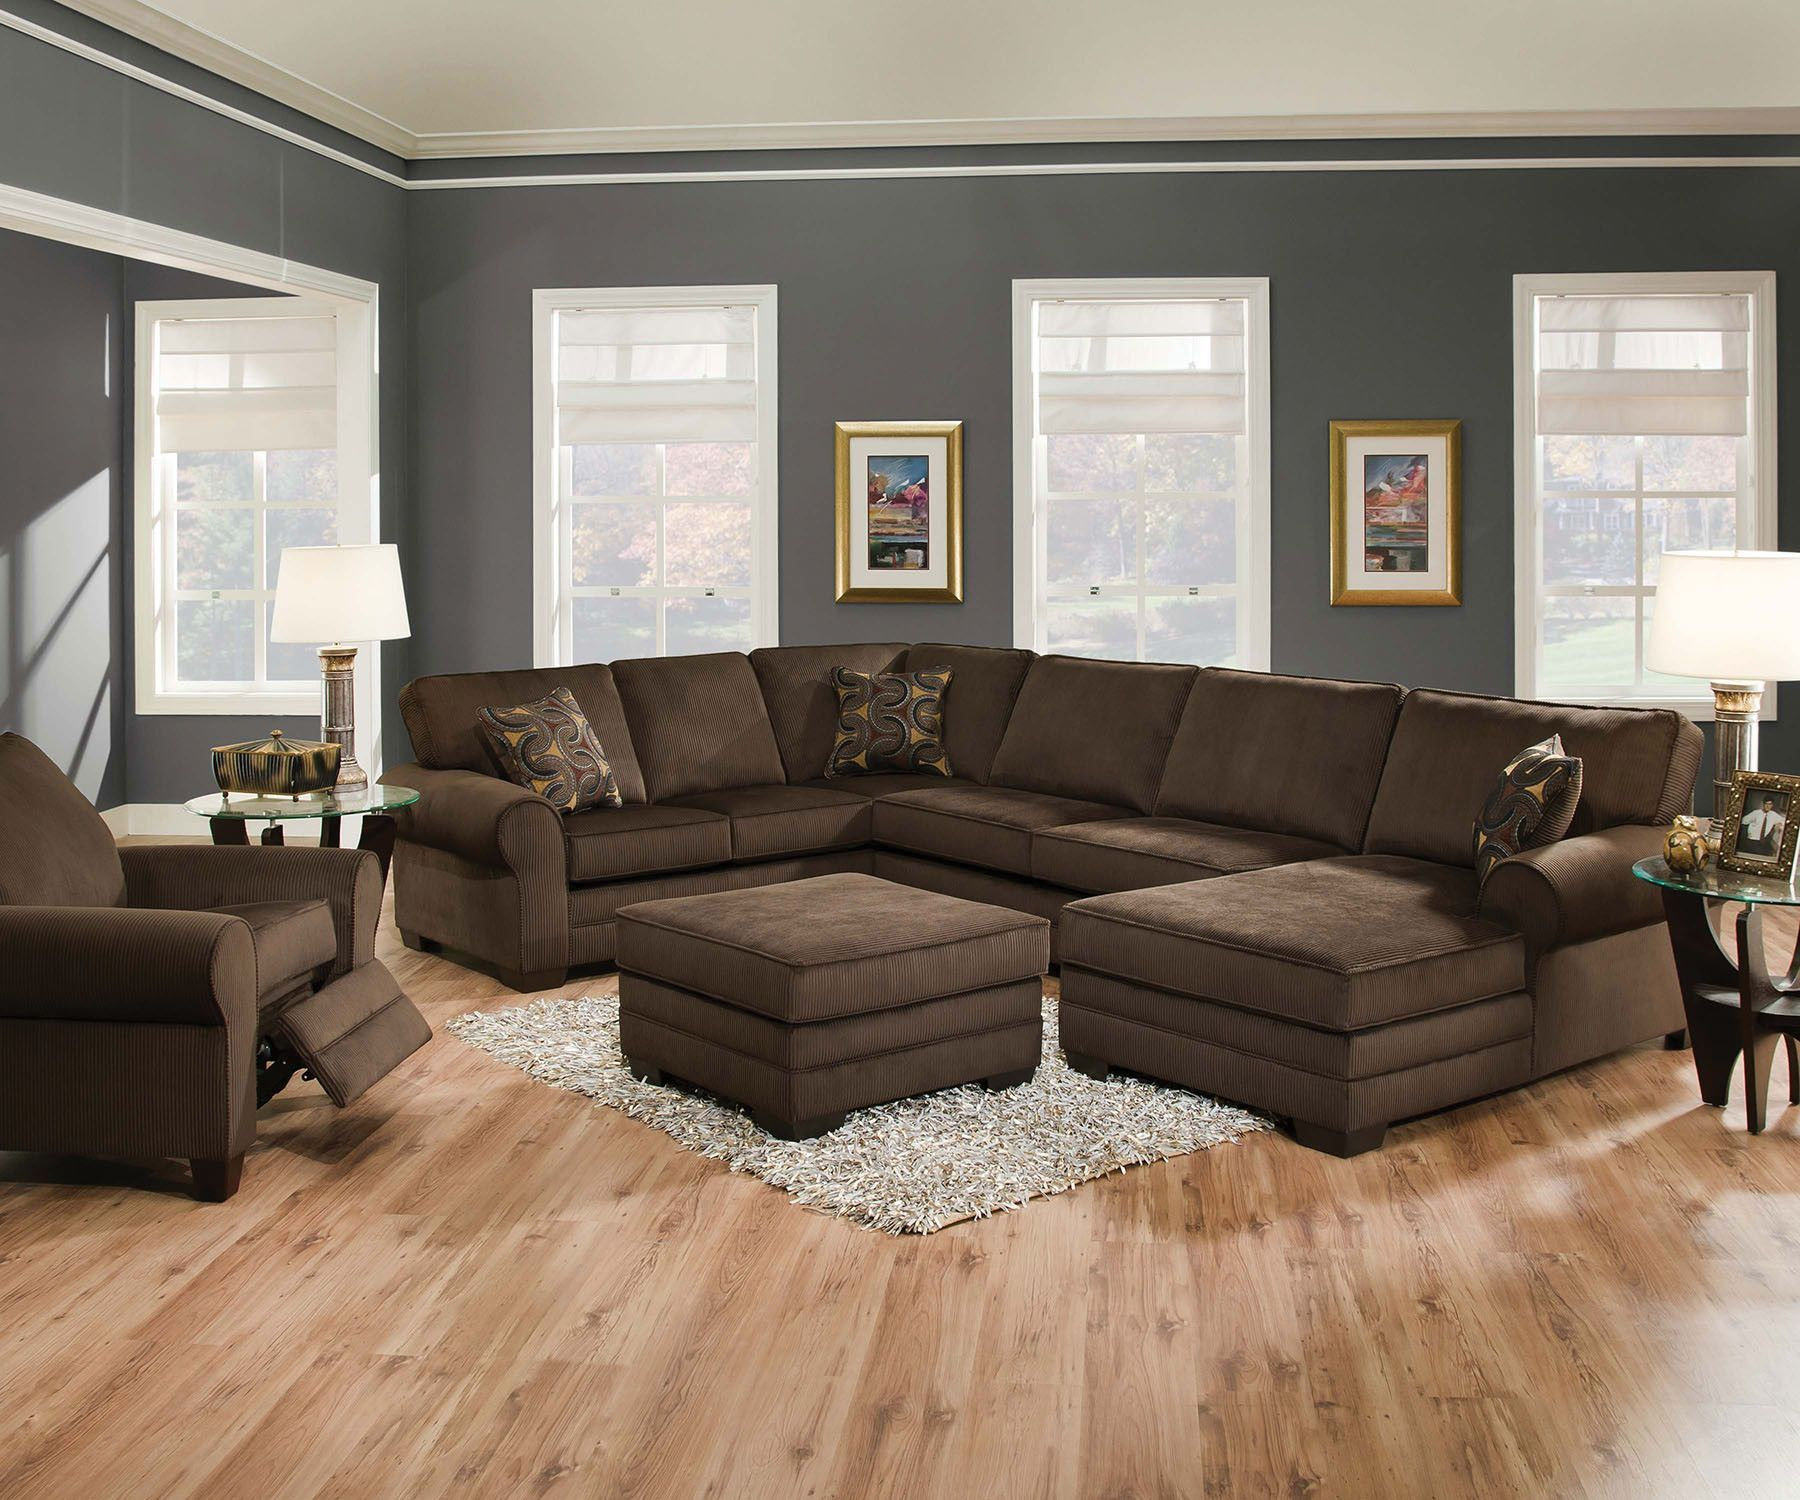 Tenner Sectional Sofa 50610 1089 Features Made In Usa Loose Seat